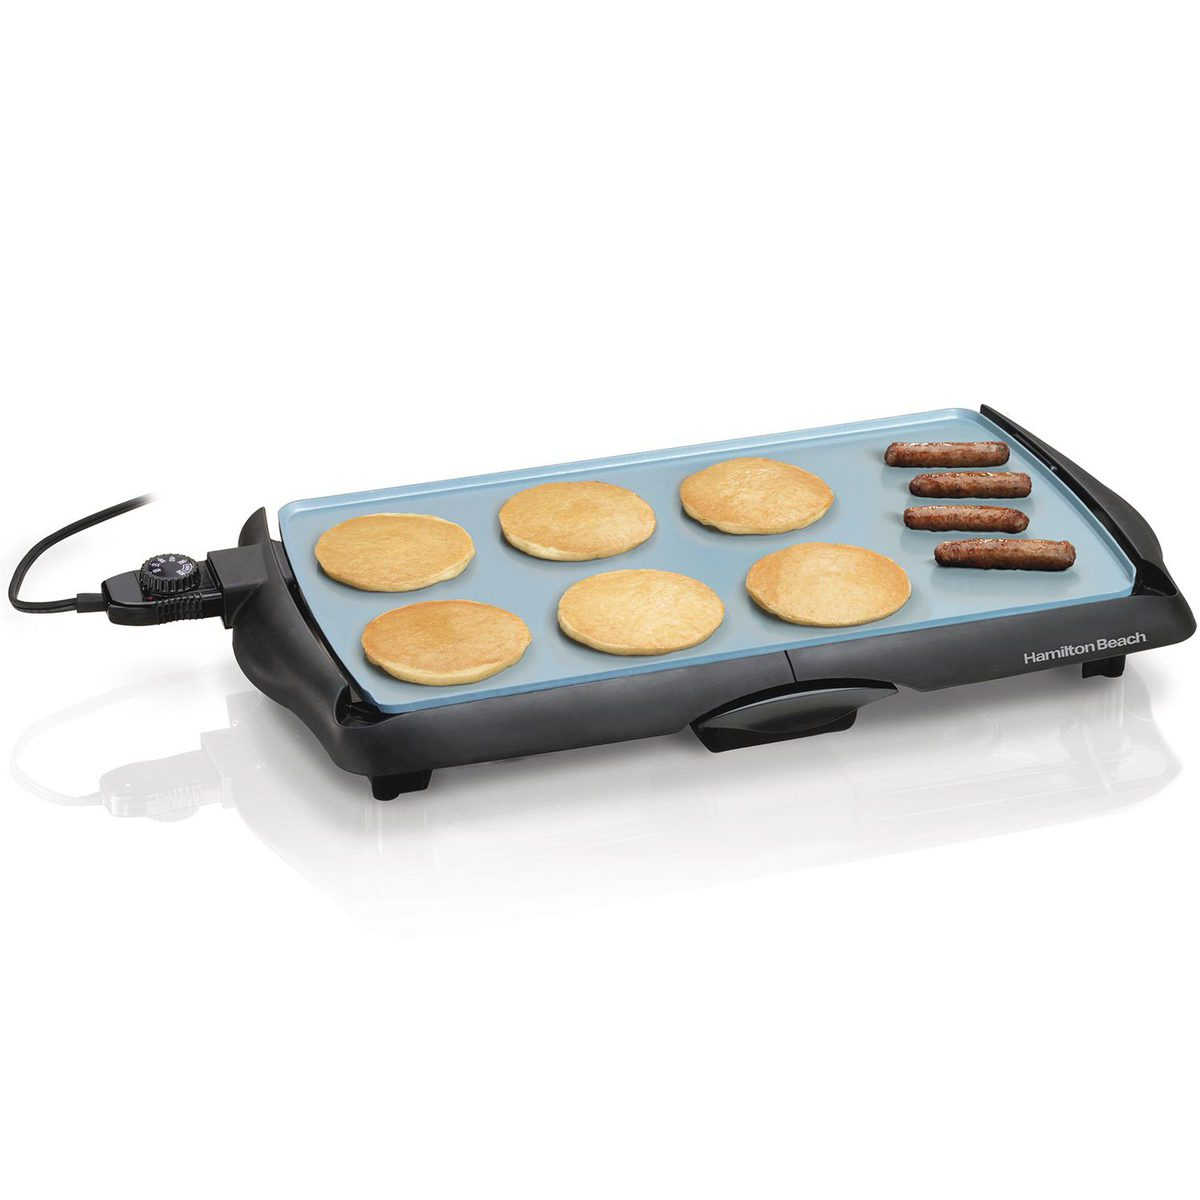 Durathon® Ceramic Griddle (38518)